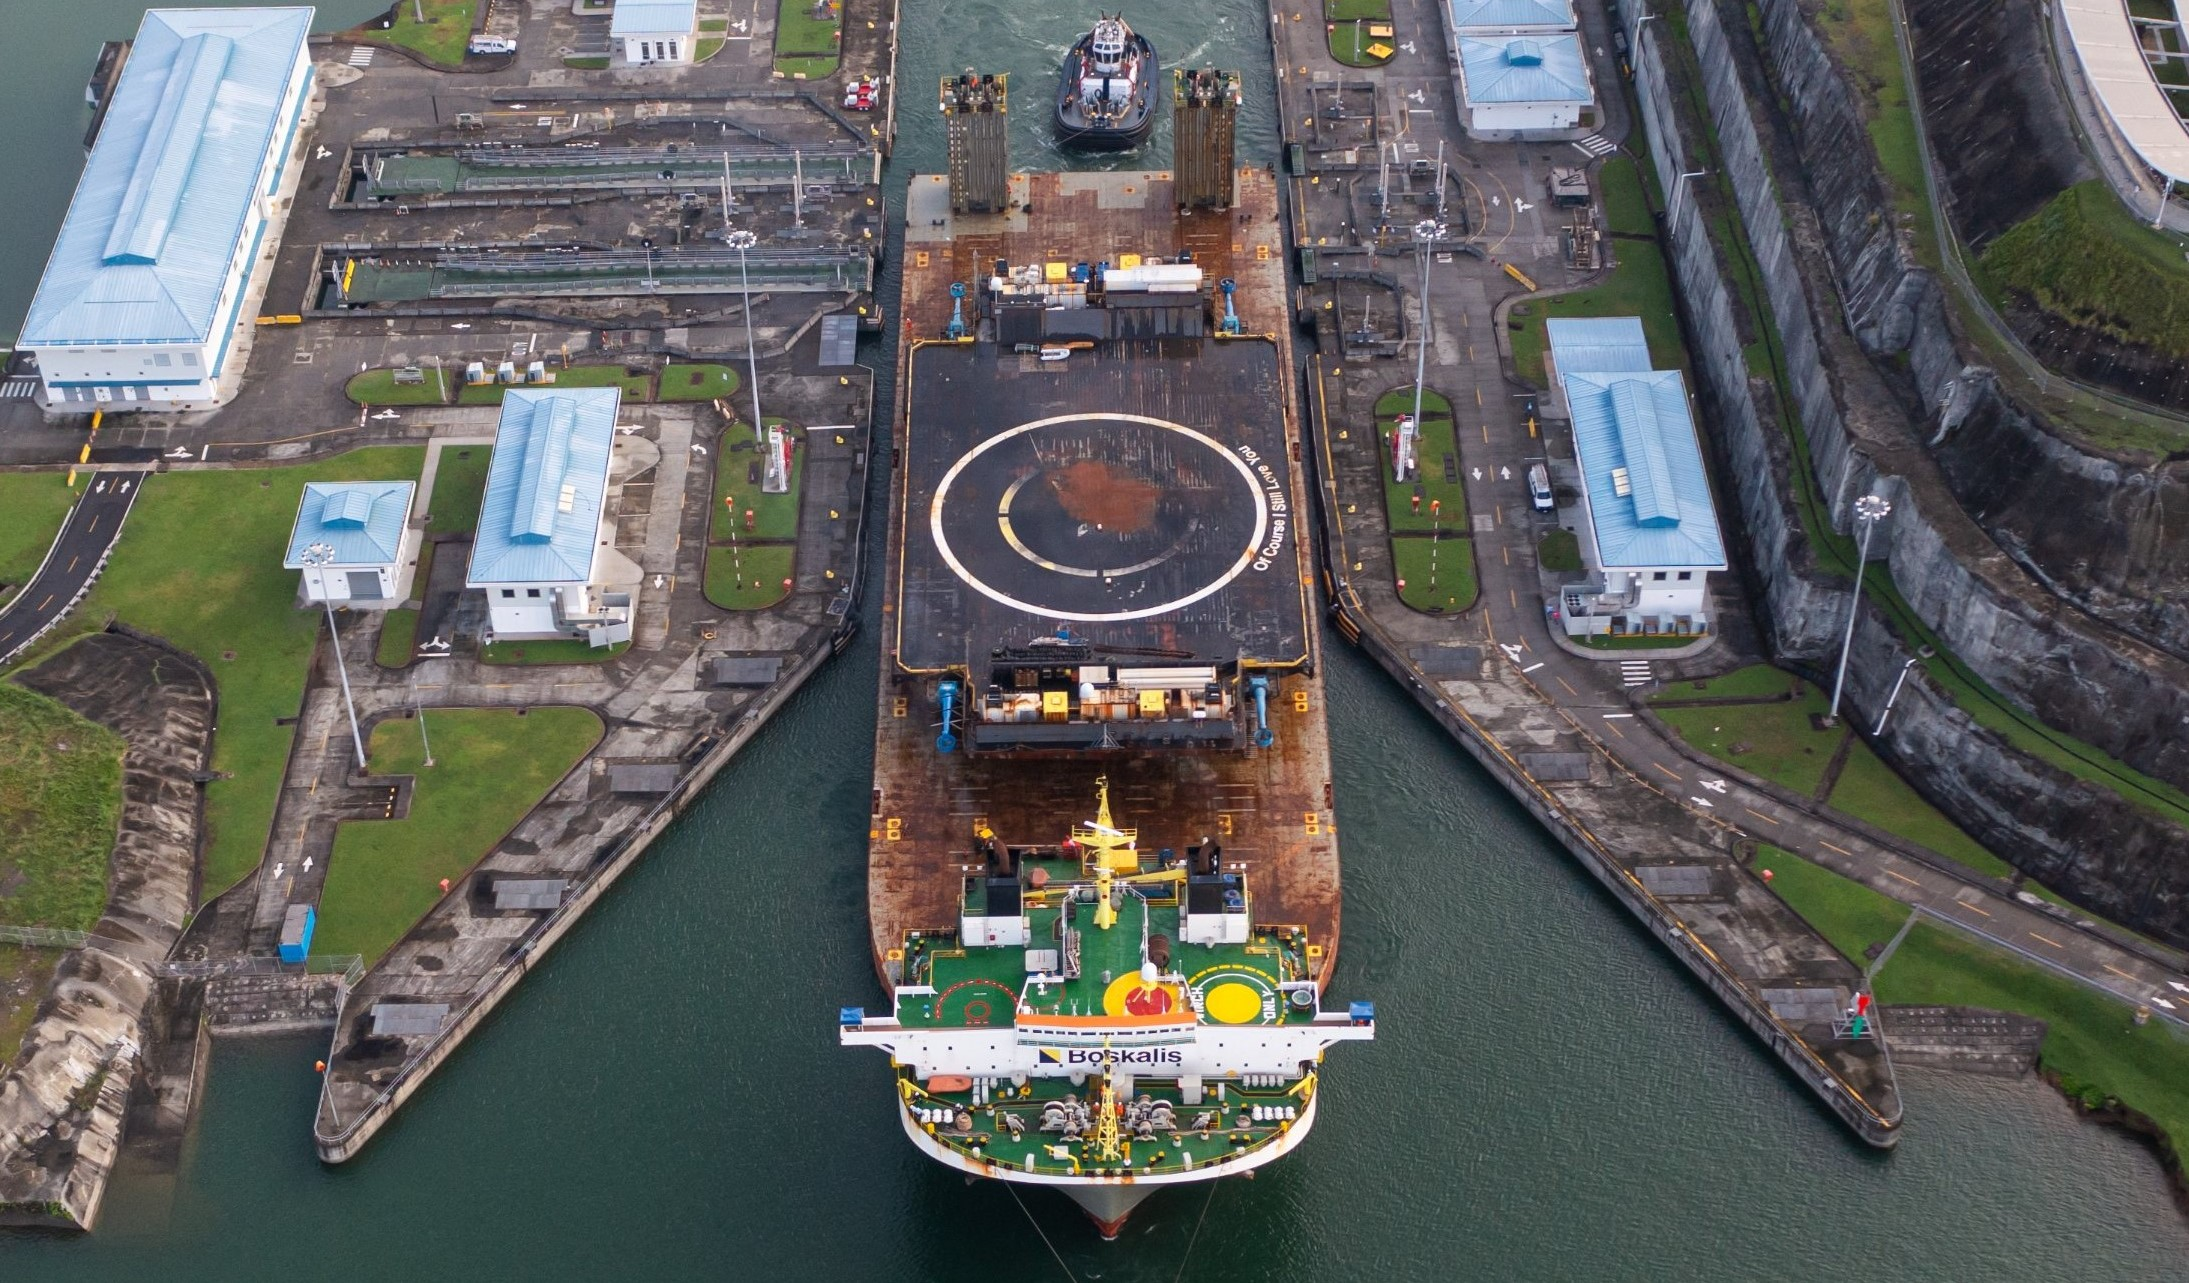 drone ship OCISLY canal transit 062521 (@ThePanamaCanal) 5 crop 2